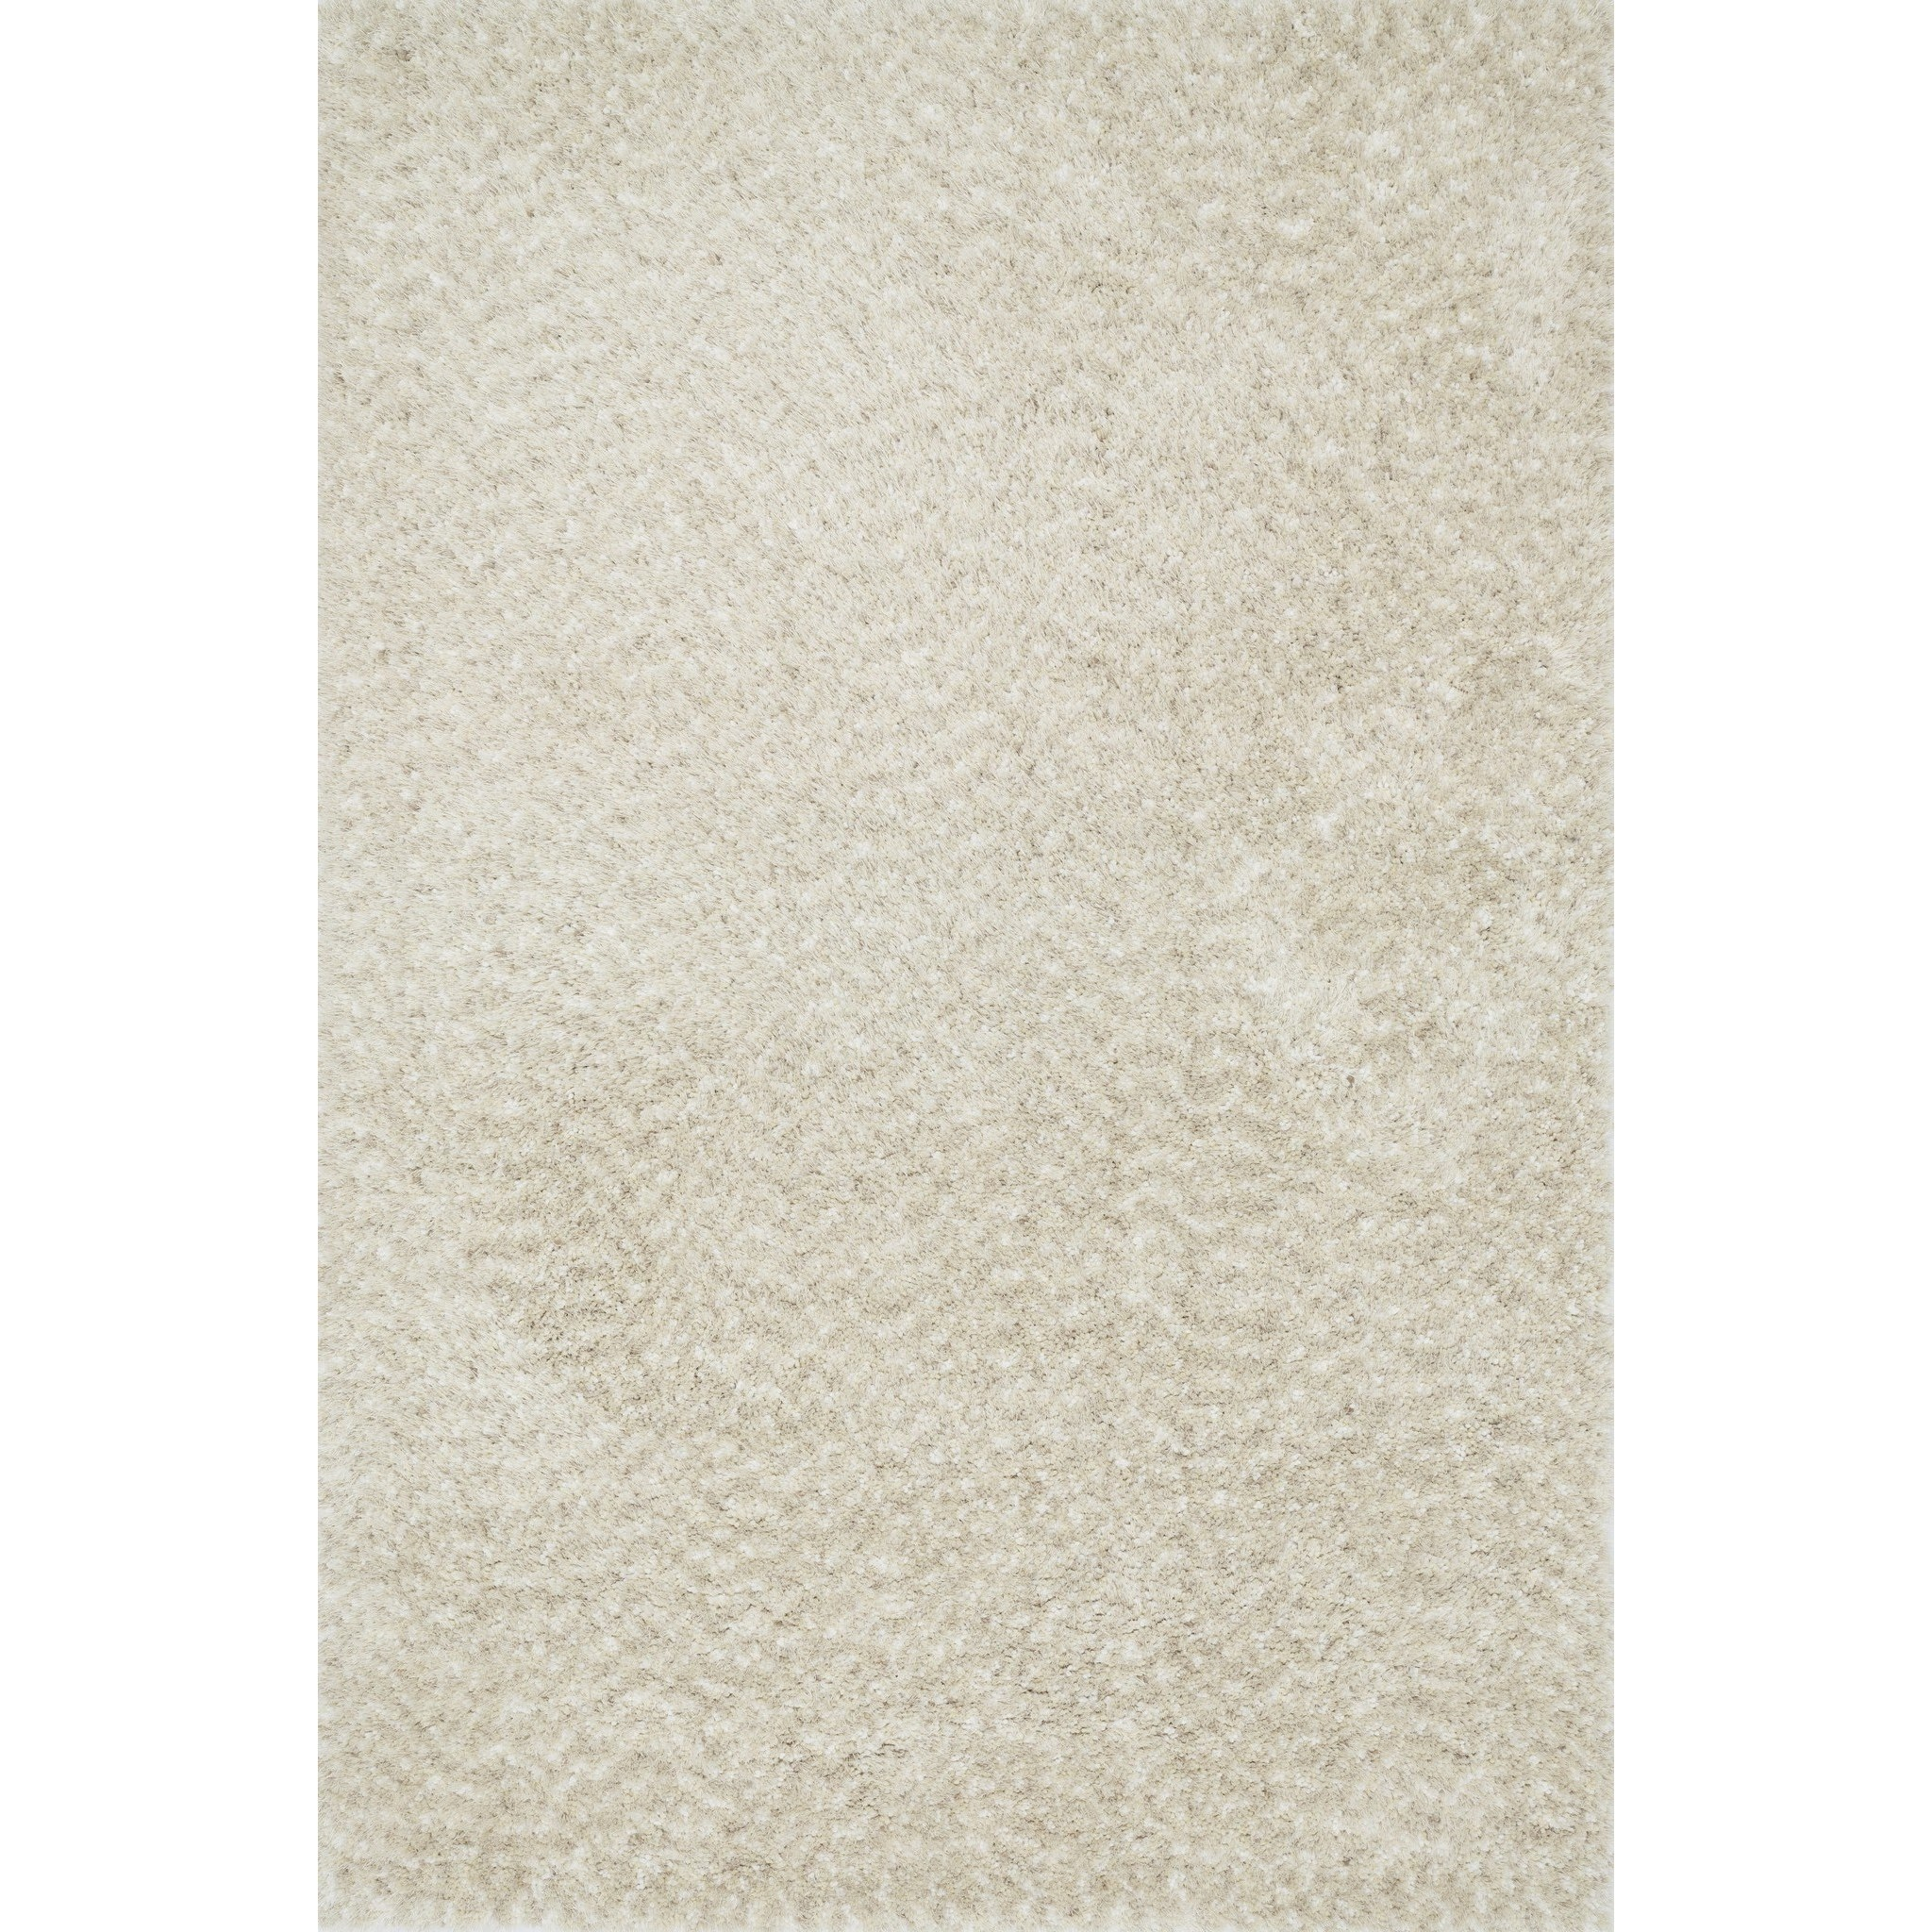 "Callie Shag 7'-6"" x 9'-6"" Area Rug by Loloi Rugs at Virginia Furniture Market"